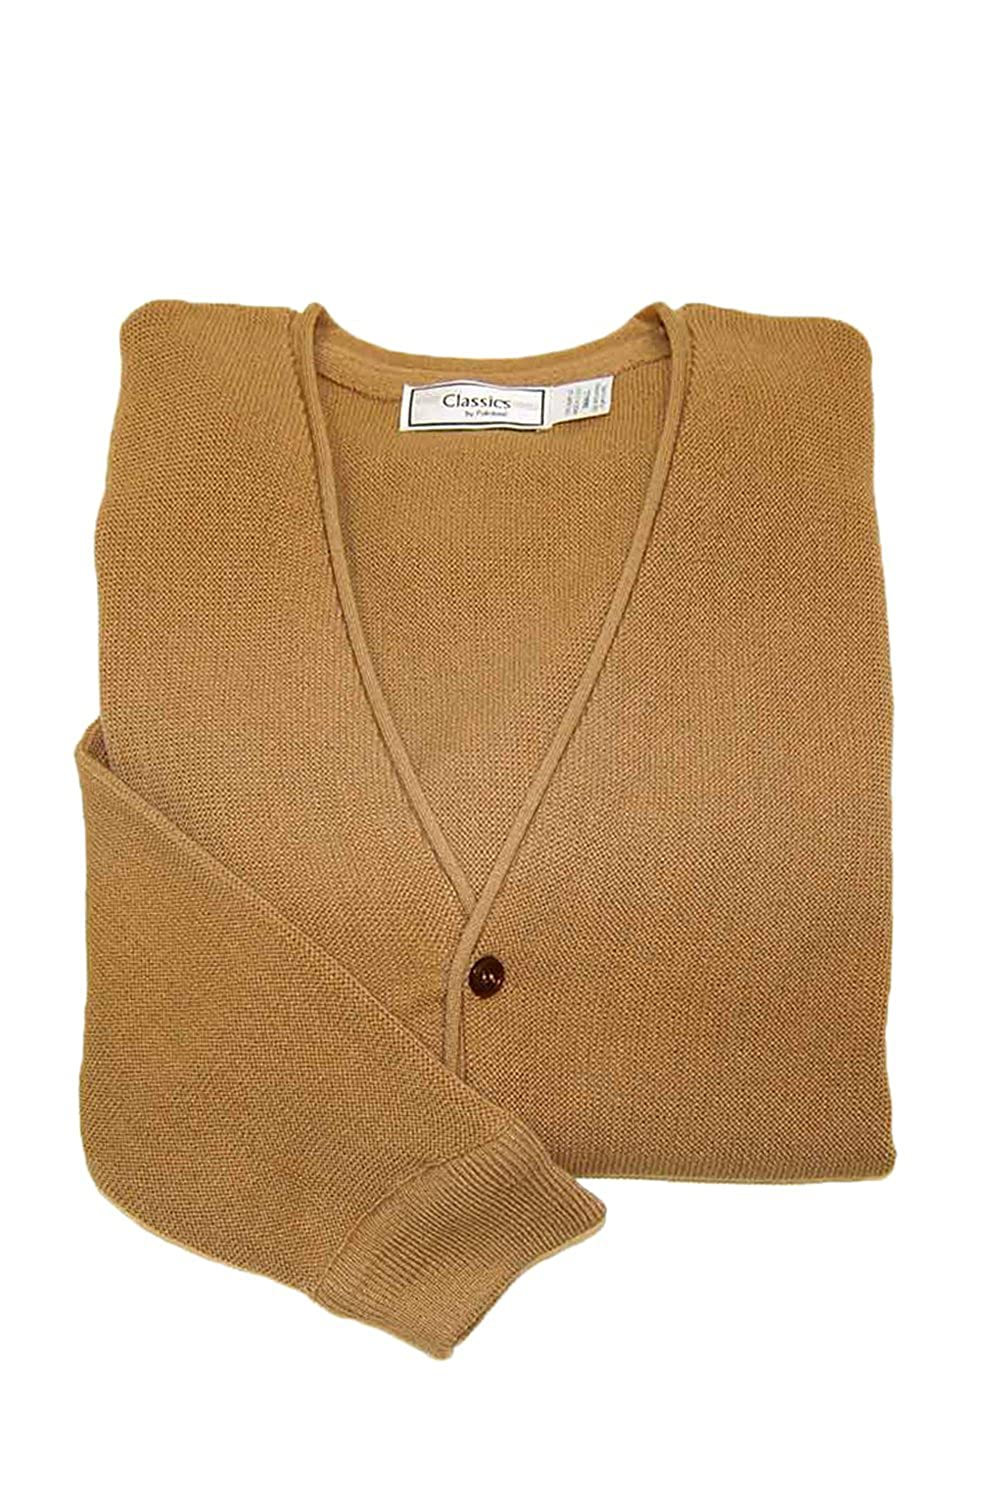 Men's Solid Link Cardigan Sweater at Amazon Men's Clothing store: